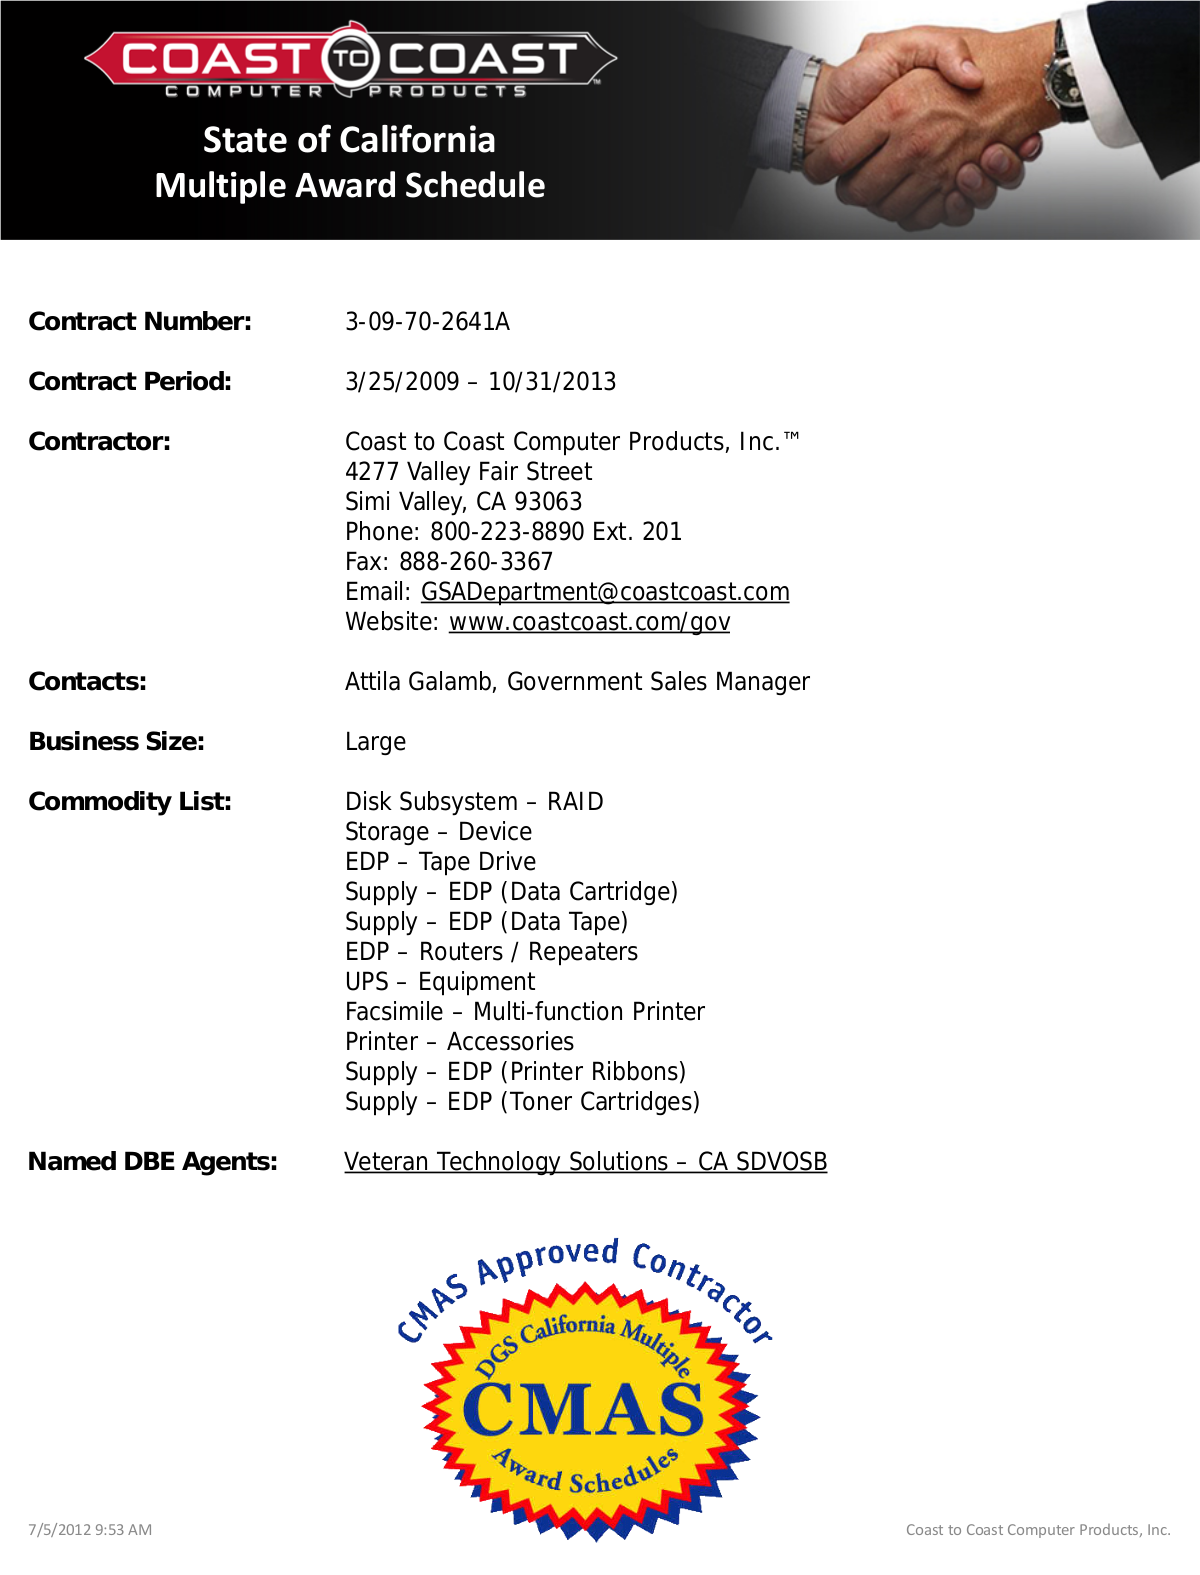 pdf for Wasp Other DuraLine 2D Imager manual